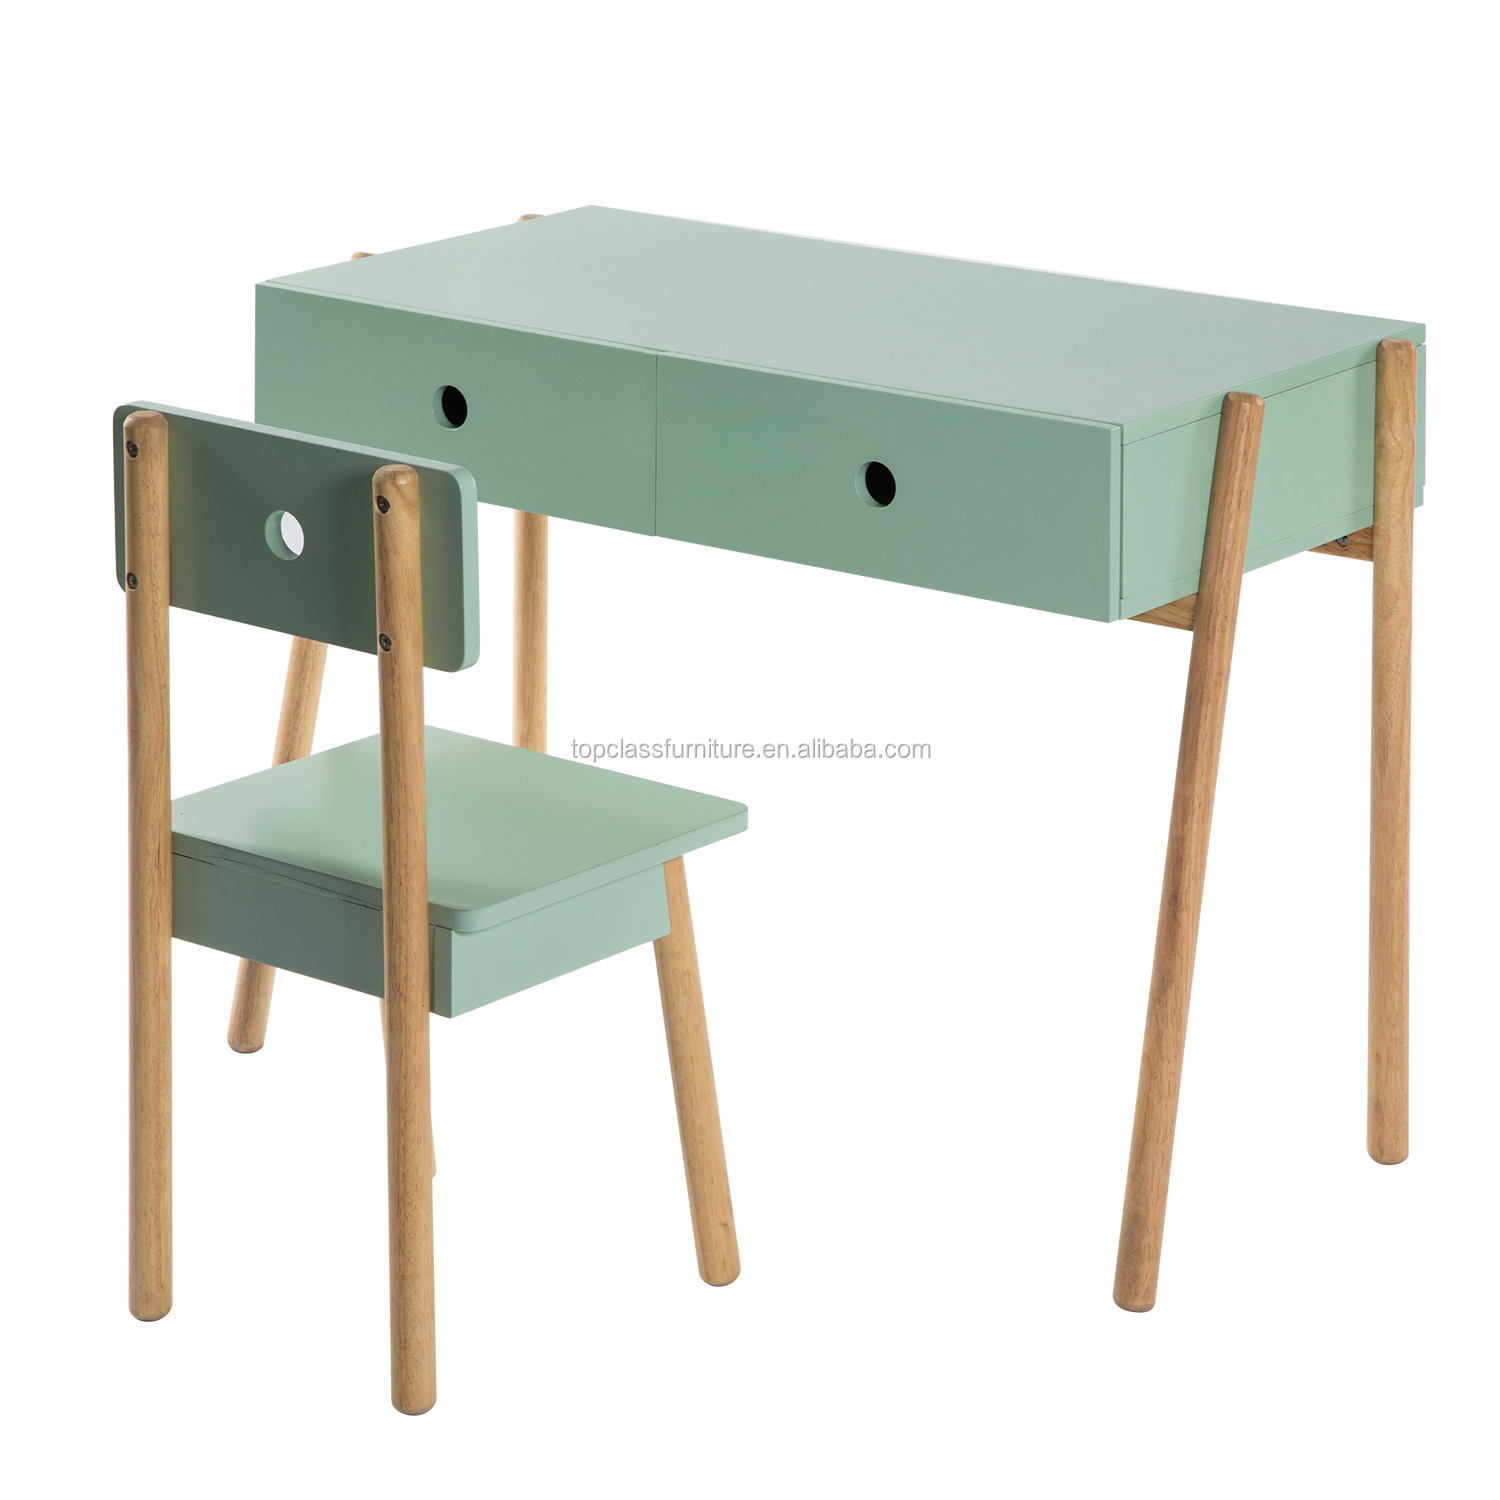 Zjk004 New Design Kids Study Table Kids Table Chairs Children Desk And  Chair - Buy Children Desk And Chair,Kids Table Chairs,Study Table And Chair  Set ...